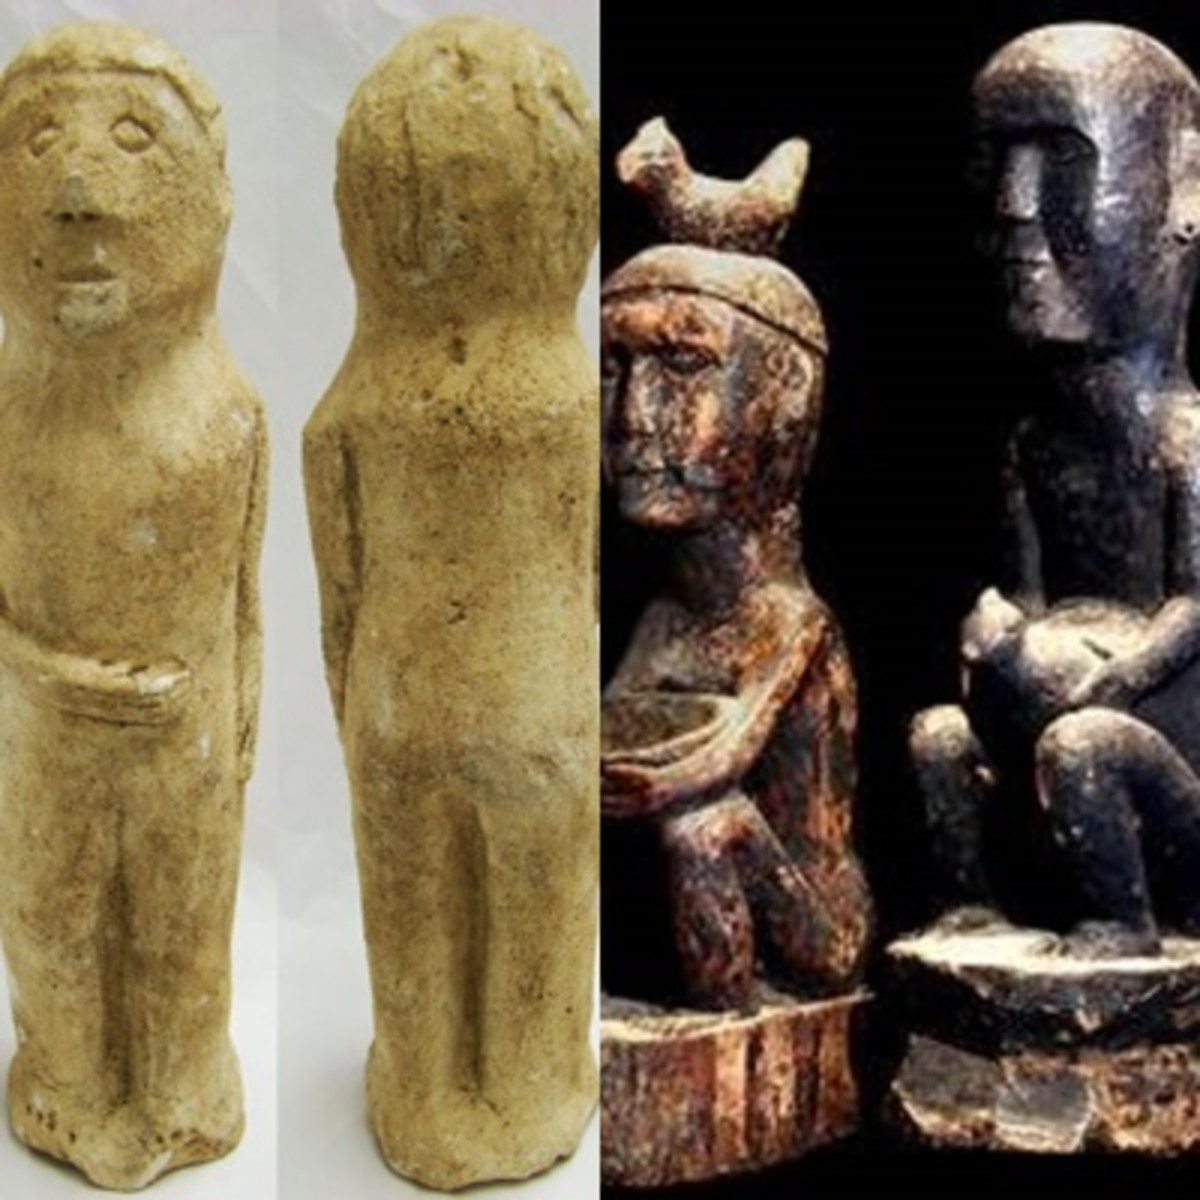 Pre-colonial liantio idols, and the wooden bulul idols of the Ifugao.